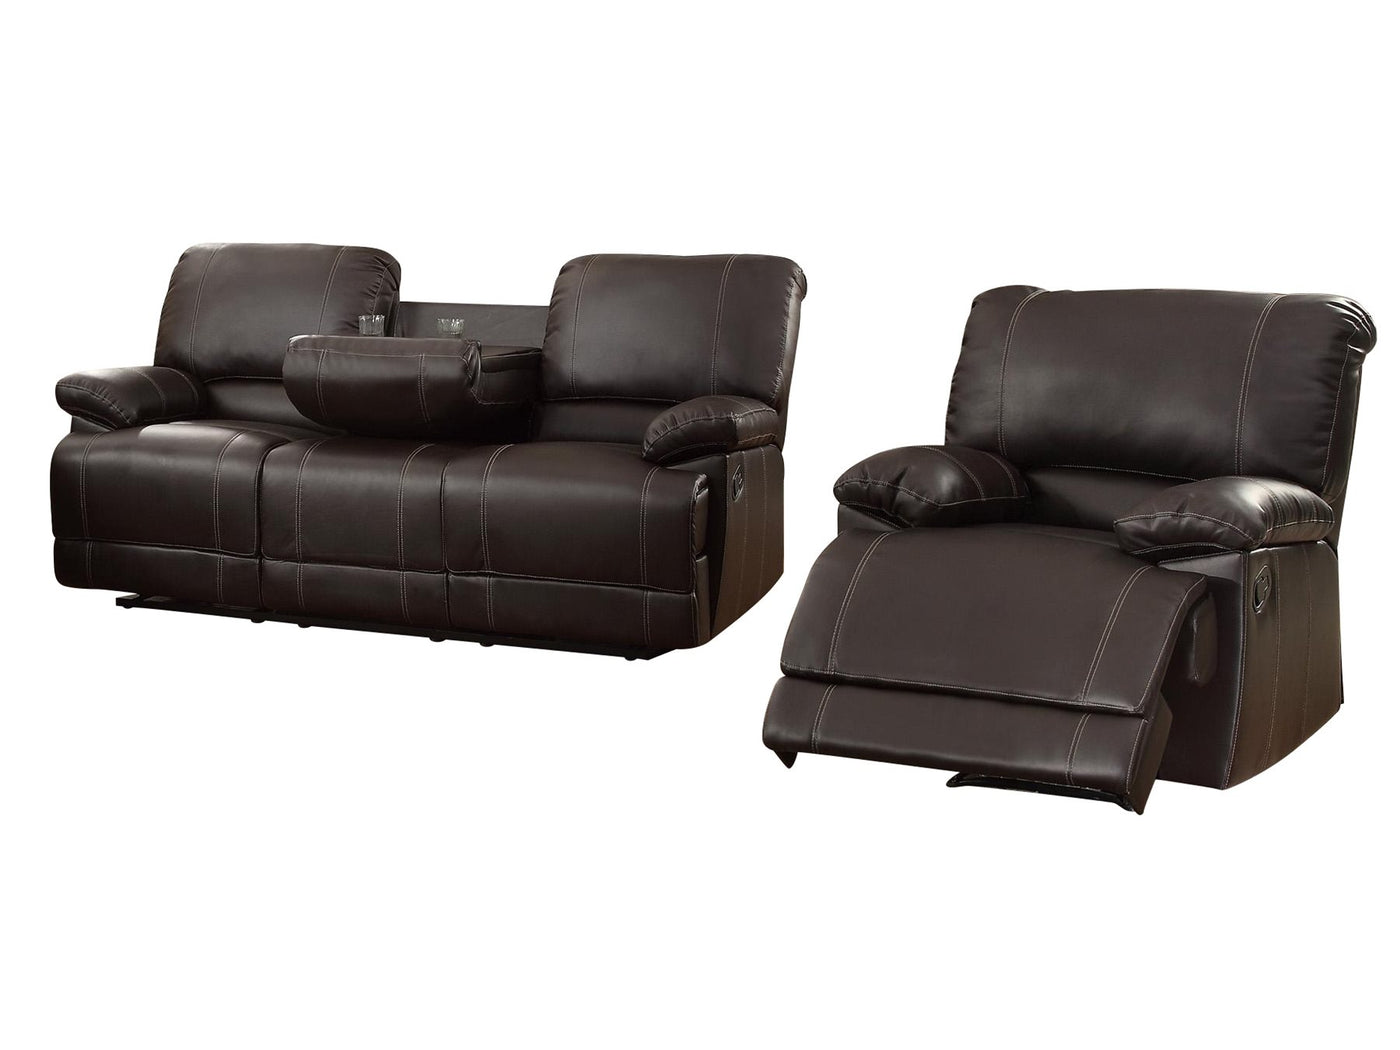 Picture of: Homelegance Cassville 2pc Double Reclining Sofa Reclining Chair The Furniture Space